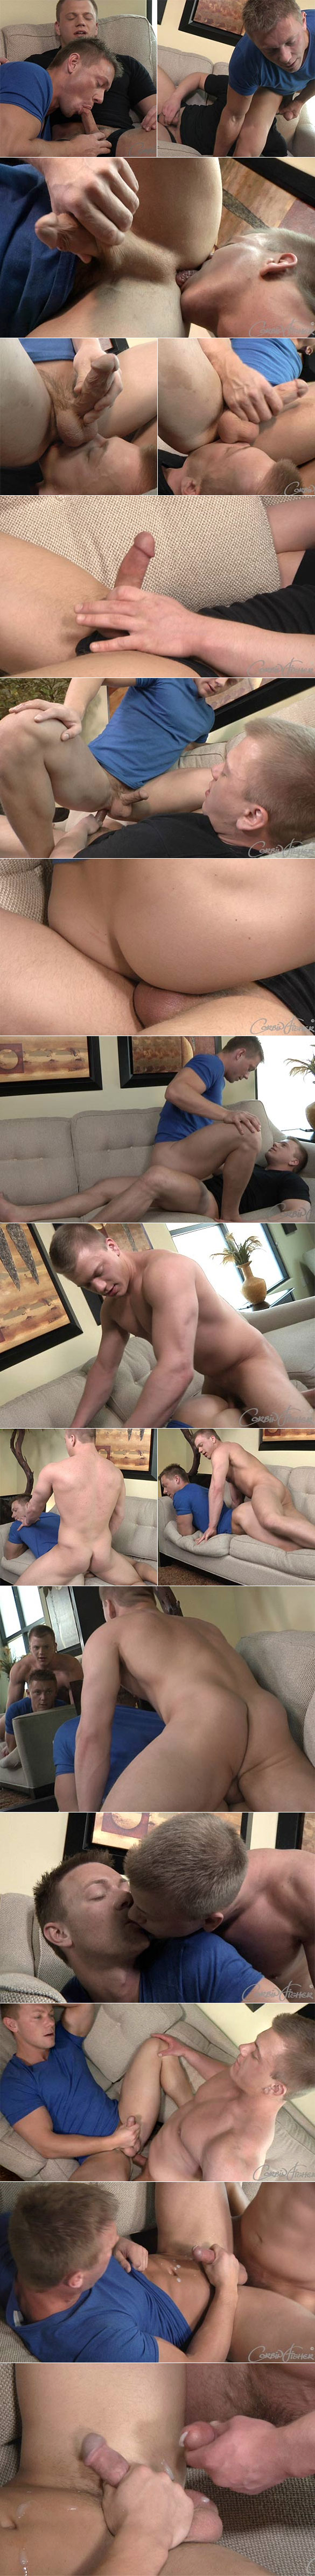 CorbinFisher: Avery barebacks Dawson